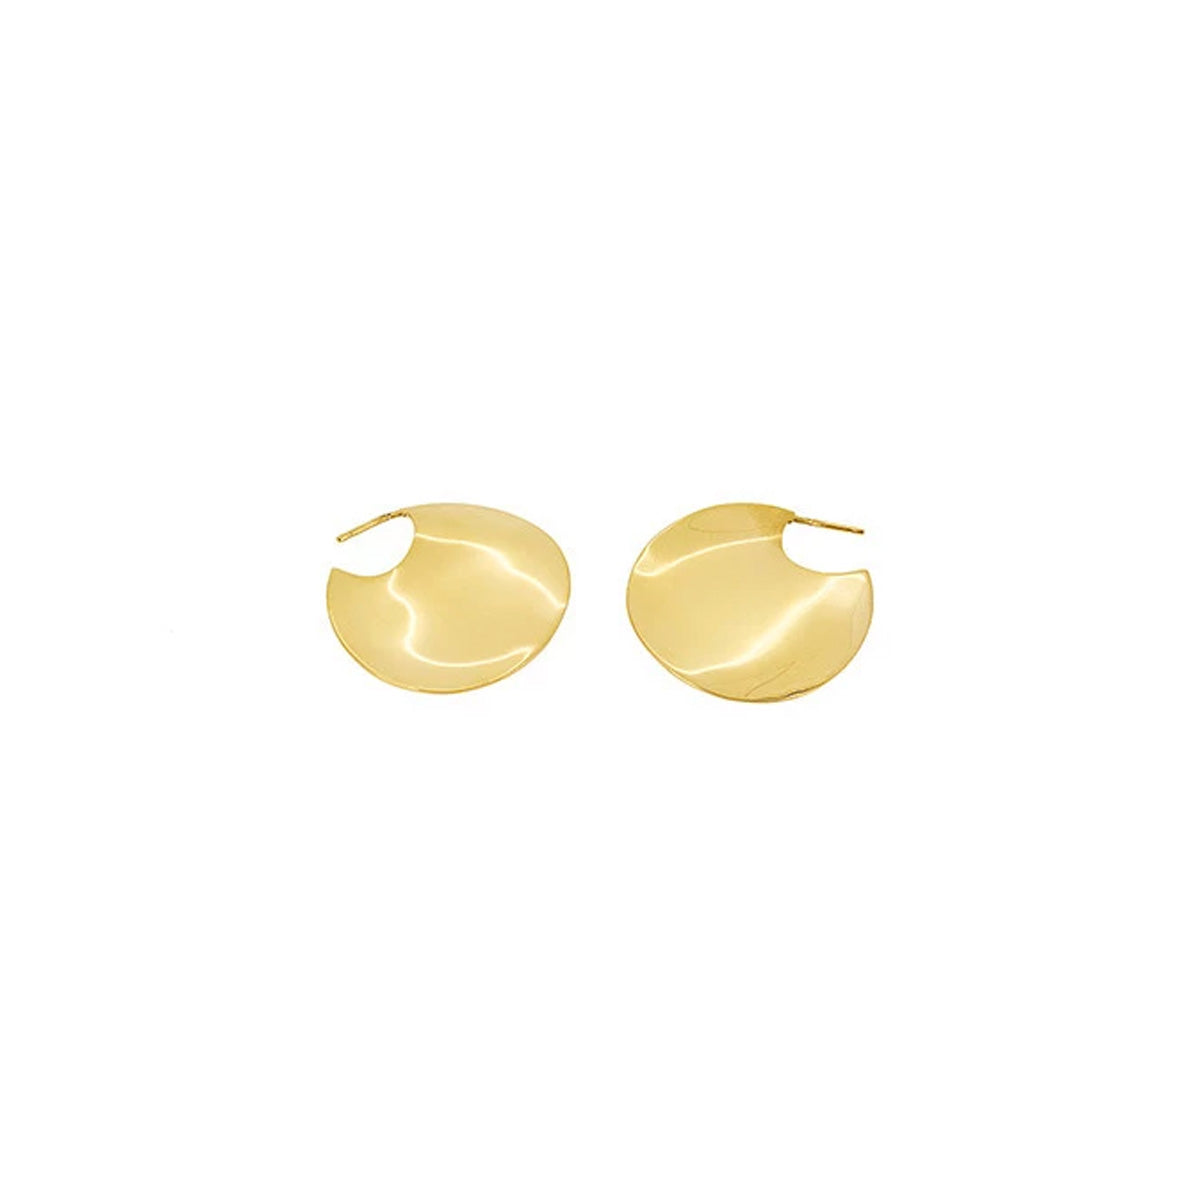 Wavee Small Gold Plated Earrings